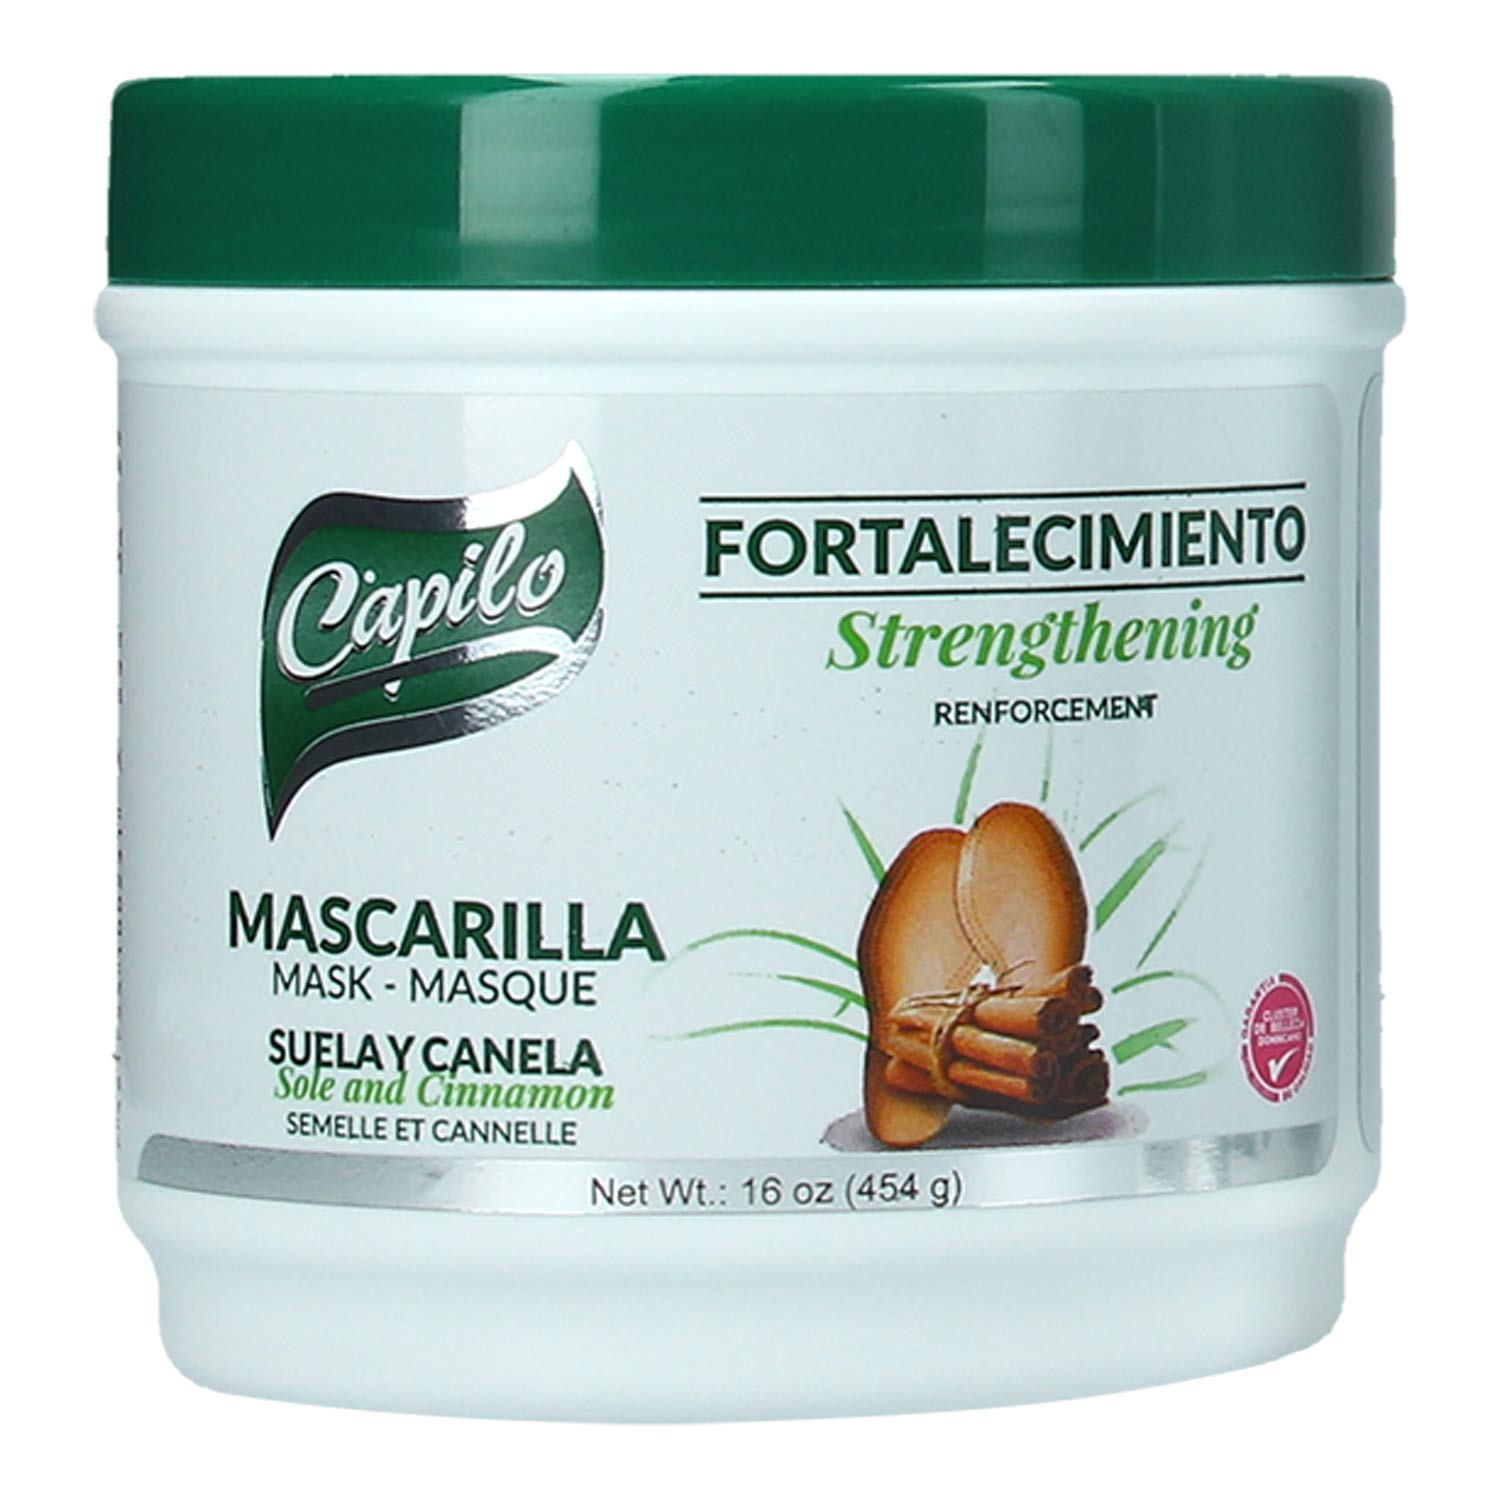 Capilo Sole And Cinnamon Strengthening Mask 16 Oz Tub Mineral Oil Free Petroleum Jelly Free Beauty